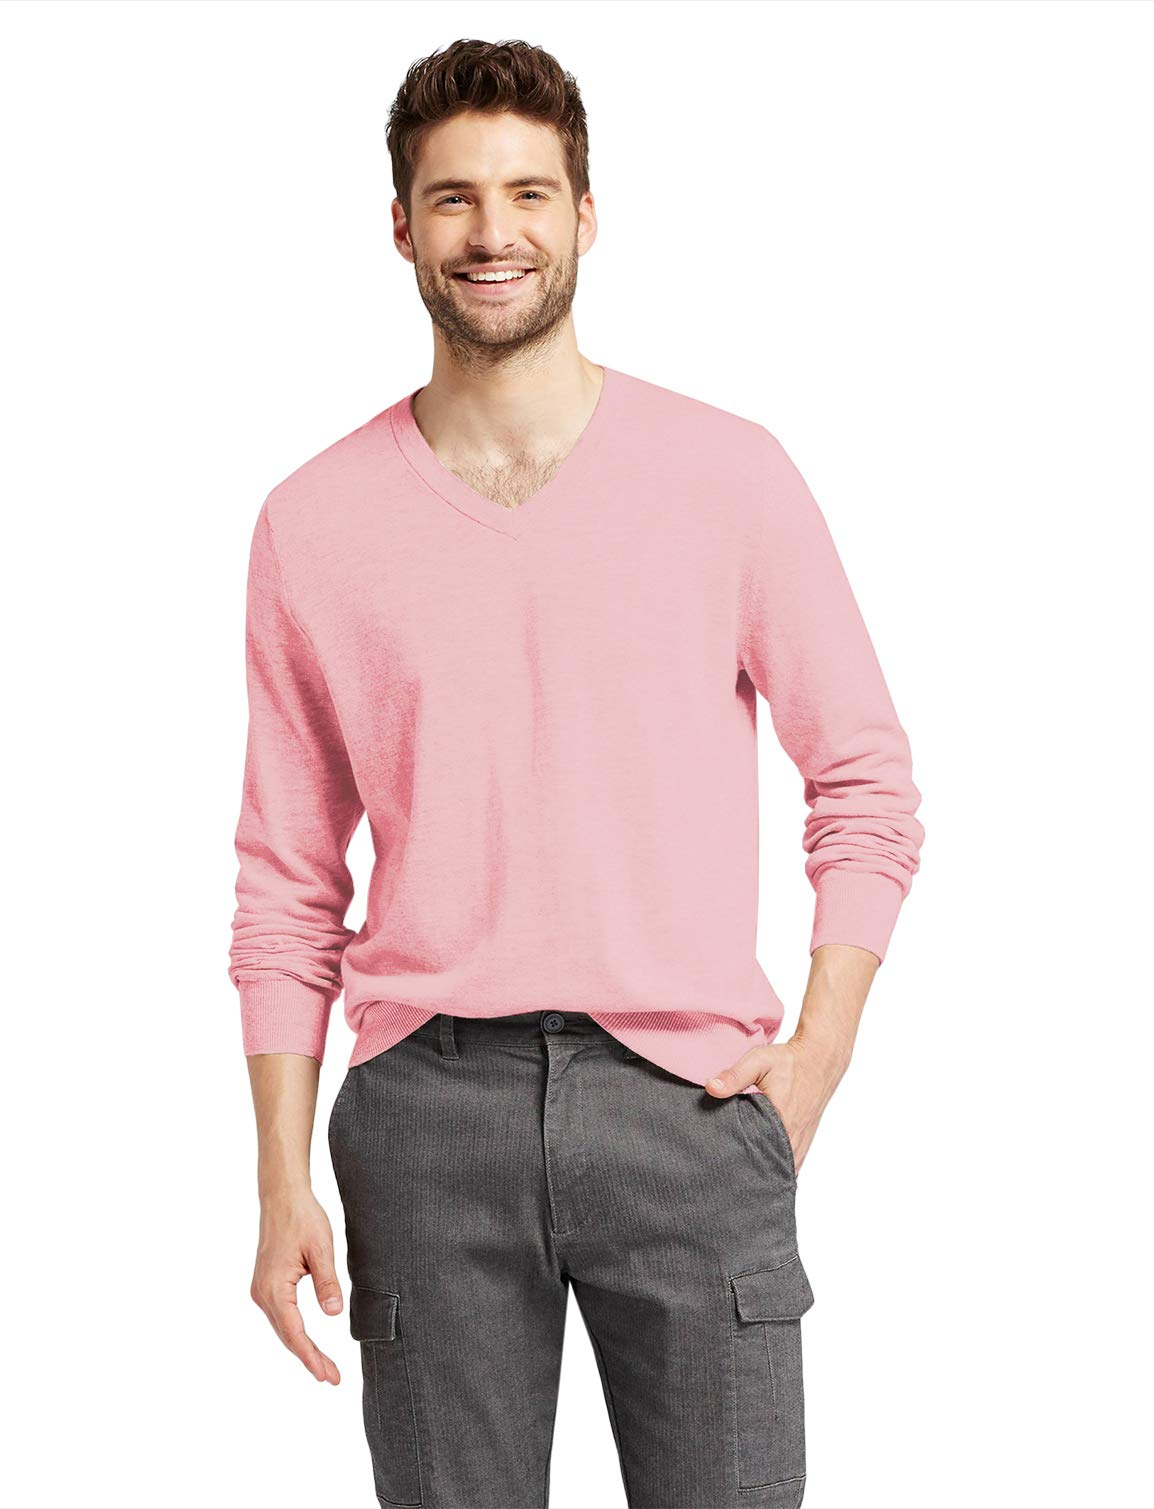 7 Encounter Men's Long-Sleeve Basic V-Neck Sweater Pink Size S